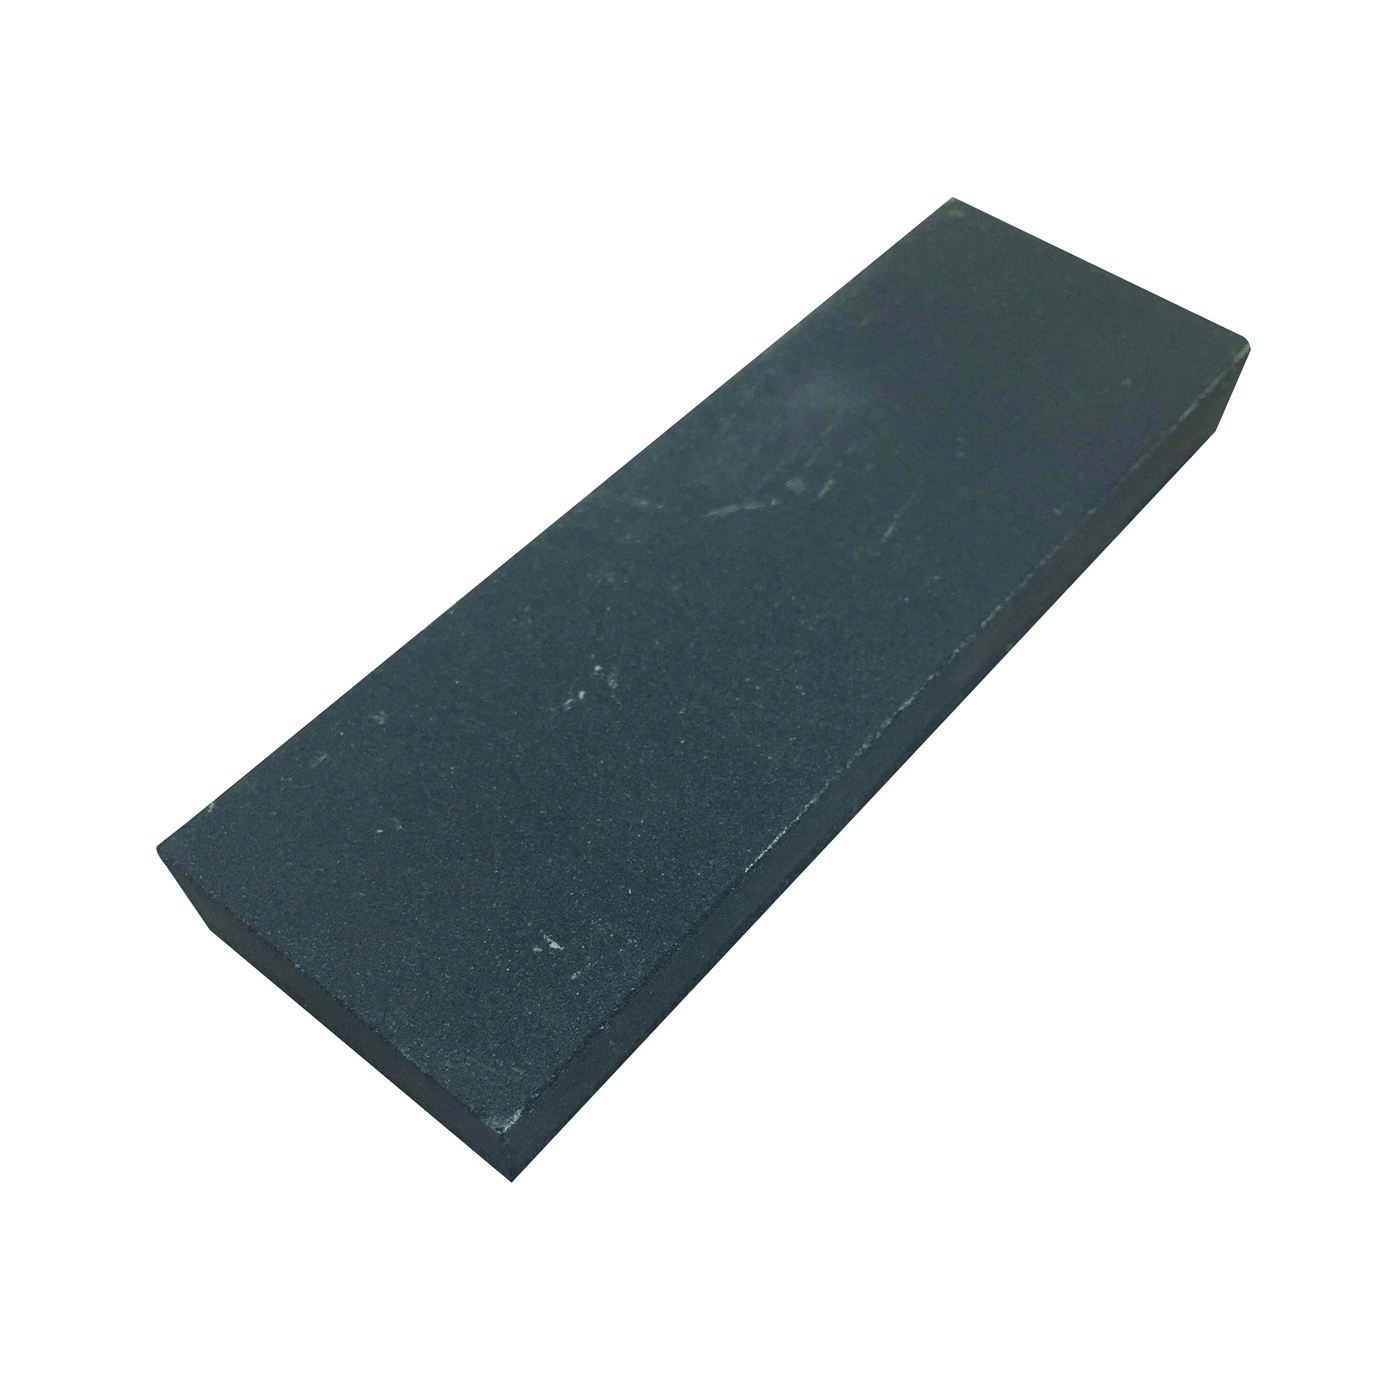 Picture of Vulcan A0640203L Sharpening Stone, 150 Grit, Coarse, Aluminum Oxide Abrasive